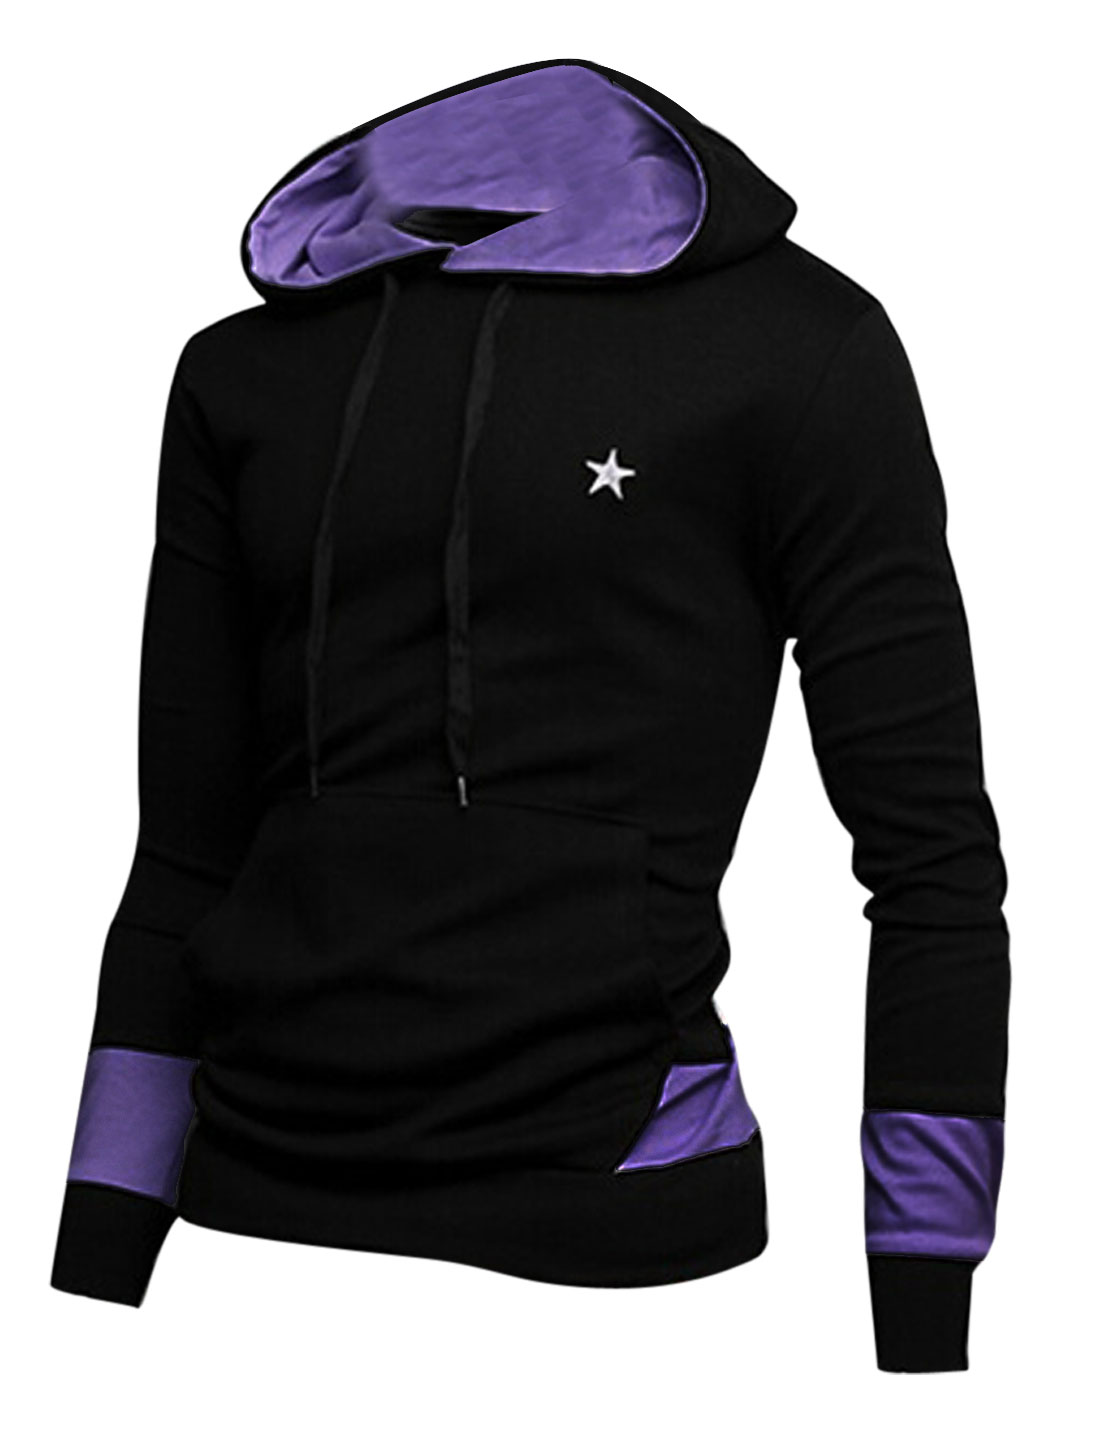 Men Contrast Color Kangaroo Pocket Star Embroidery Hoodie Shirt Black M